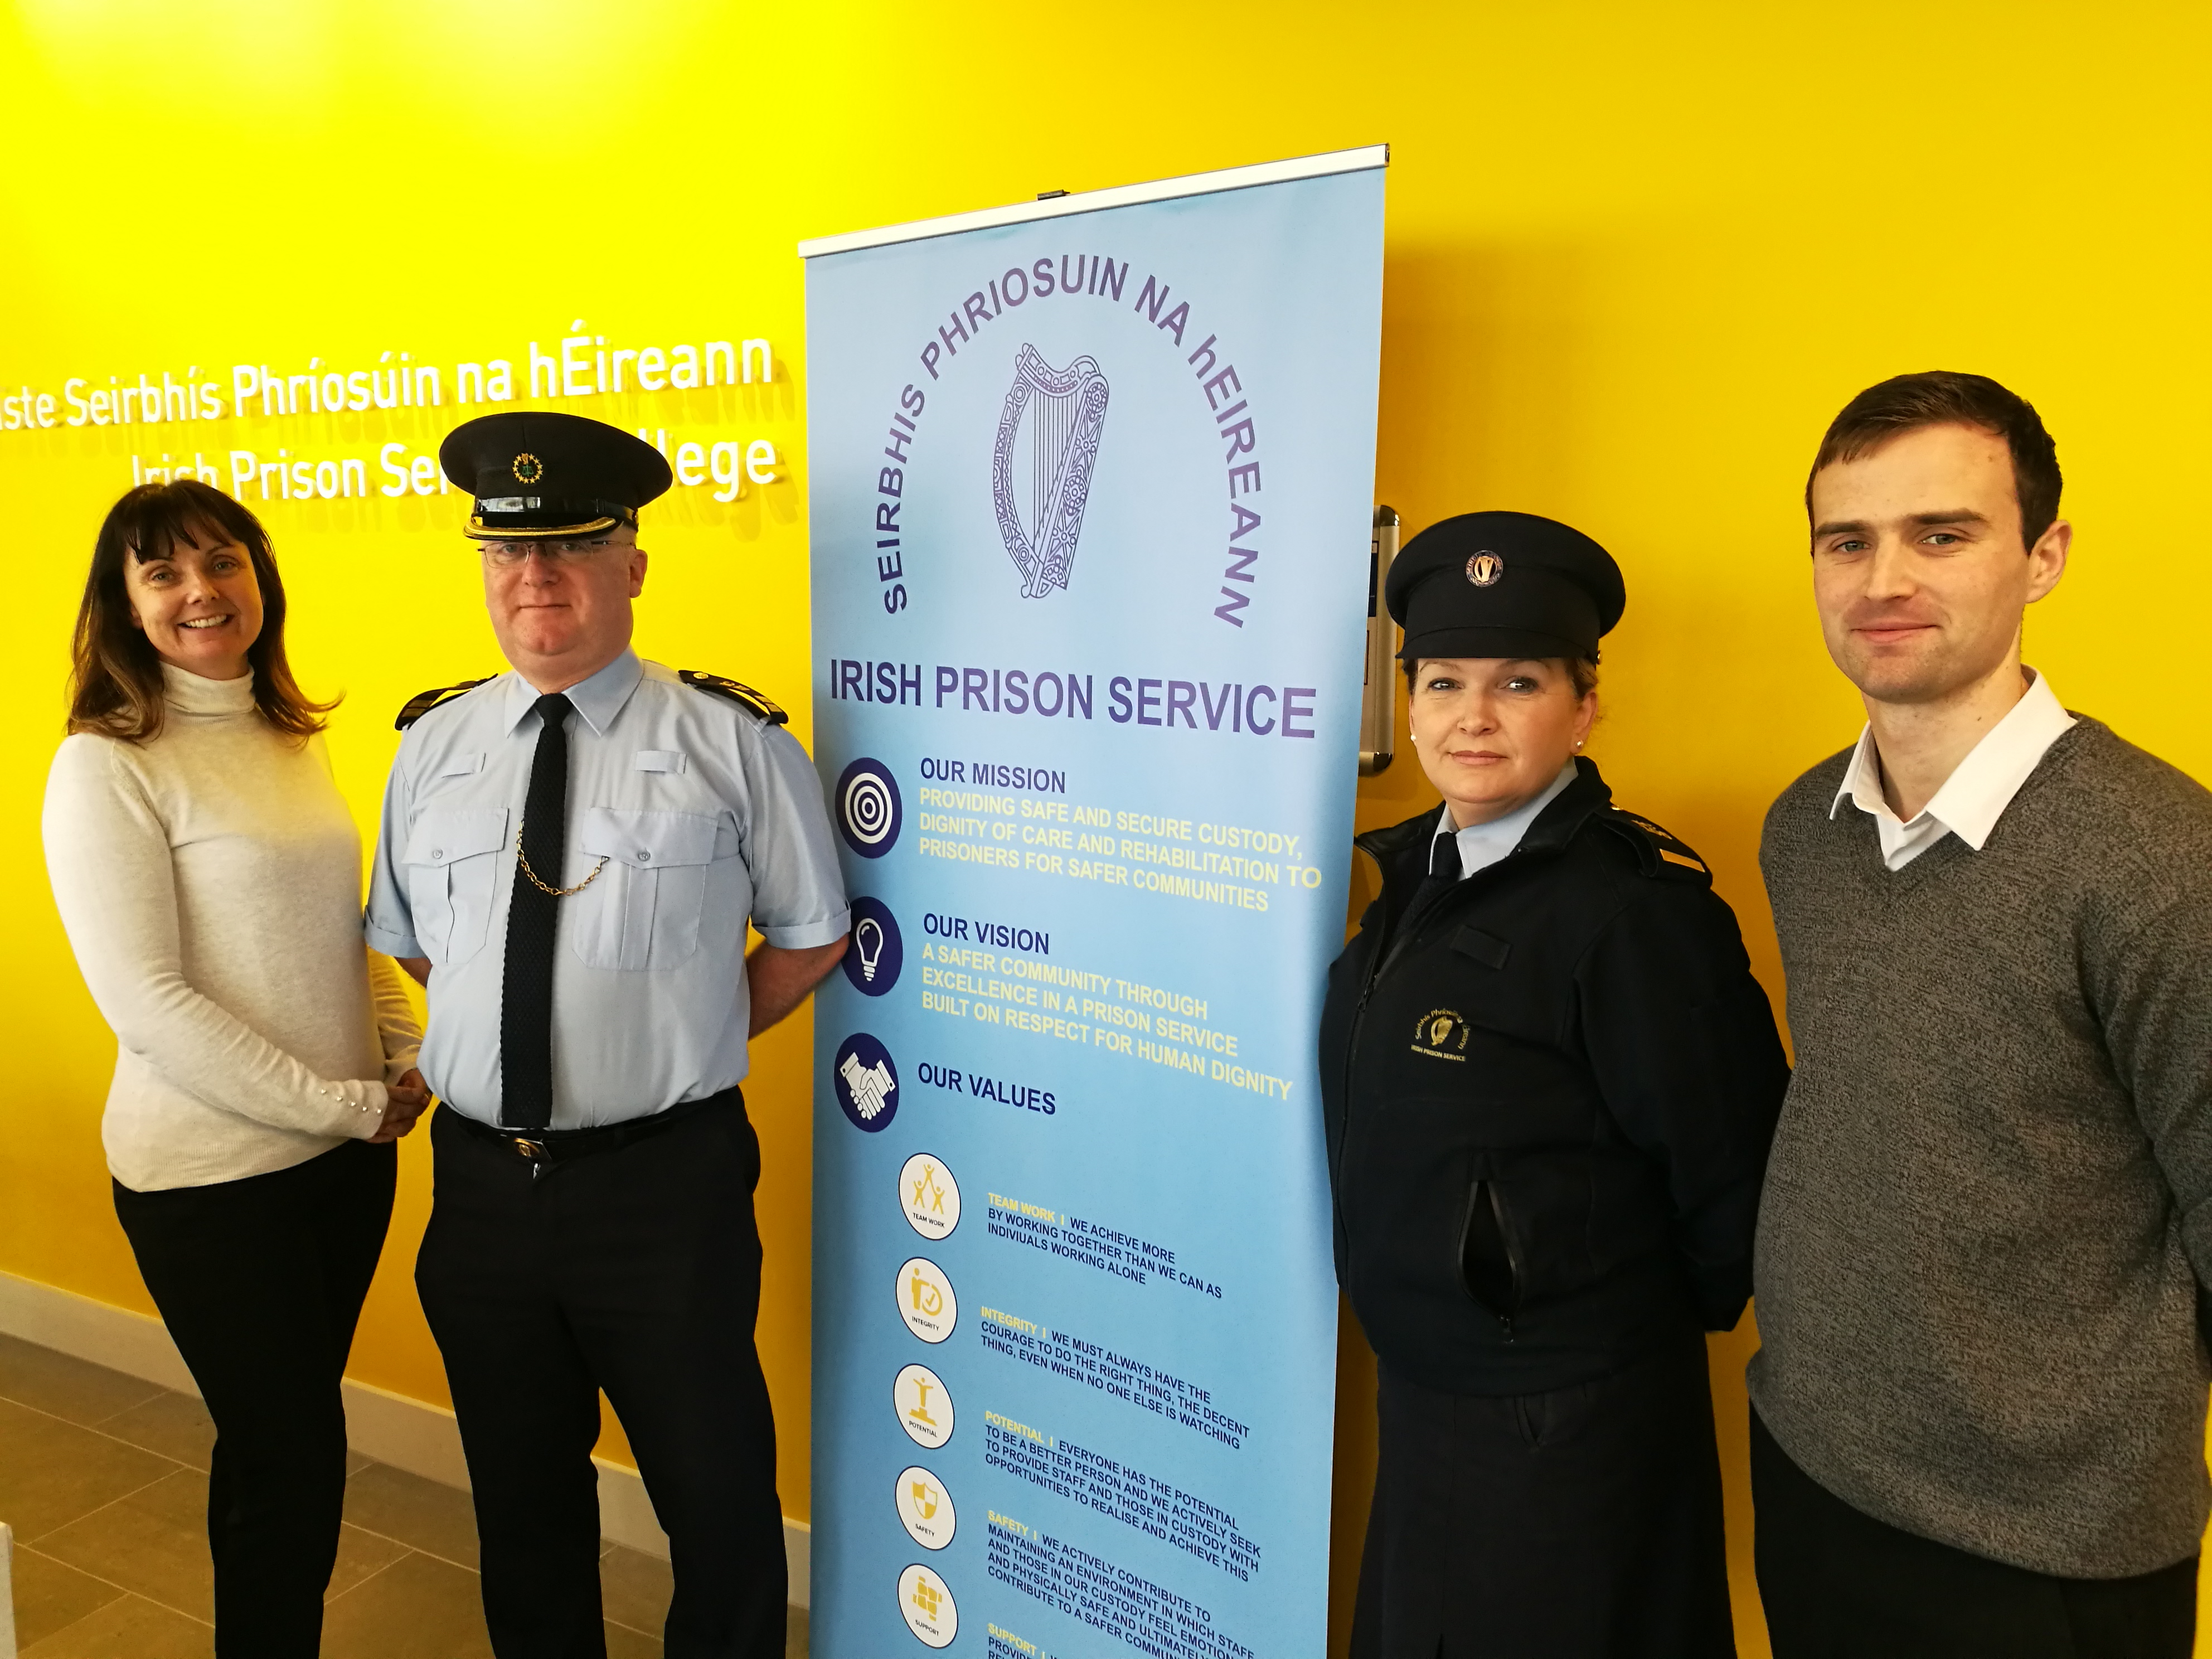 Pictured are members of the proposal team, left to right: Dr Fionnuala Brennan, lecturer WIT and proposal lead, Chief Officer Raphael O'Keeffe, Irish Prison Service, Sylvia Flynn, HCCC Co-ordinator Irish Prison Service, Cathal Ryan, HCCC Project Manager, WIT.